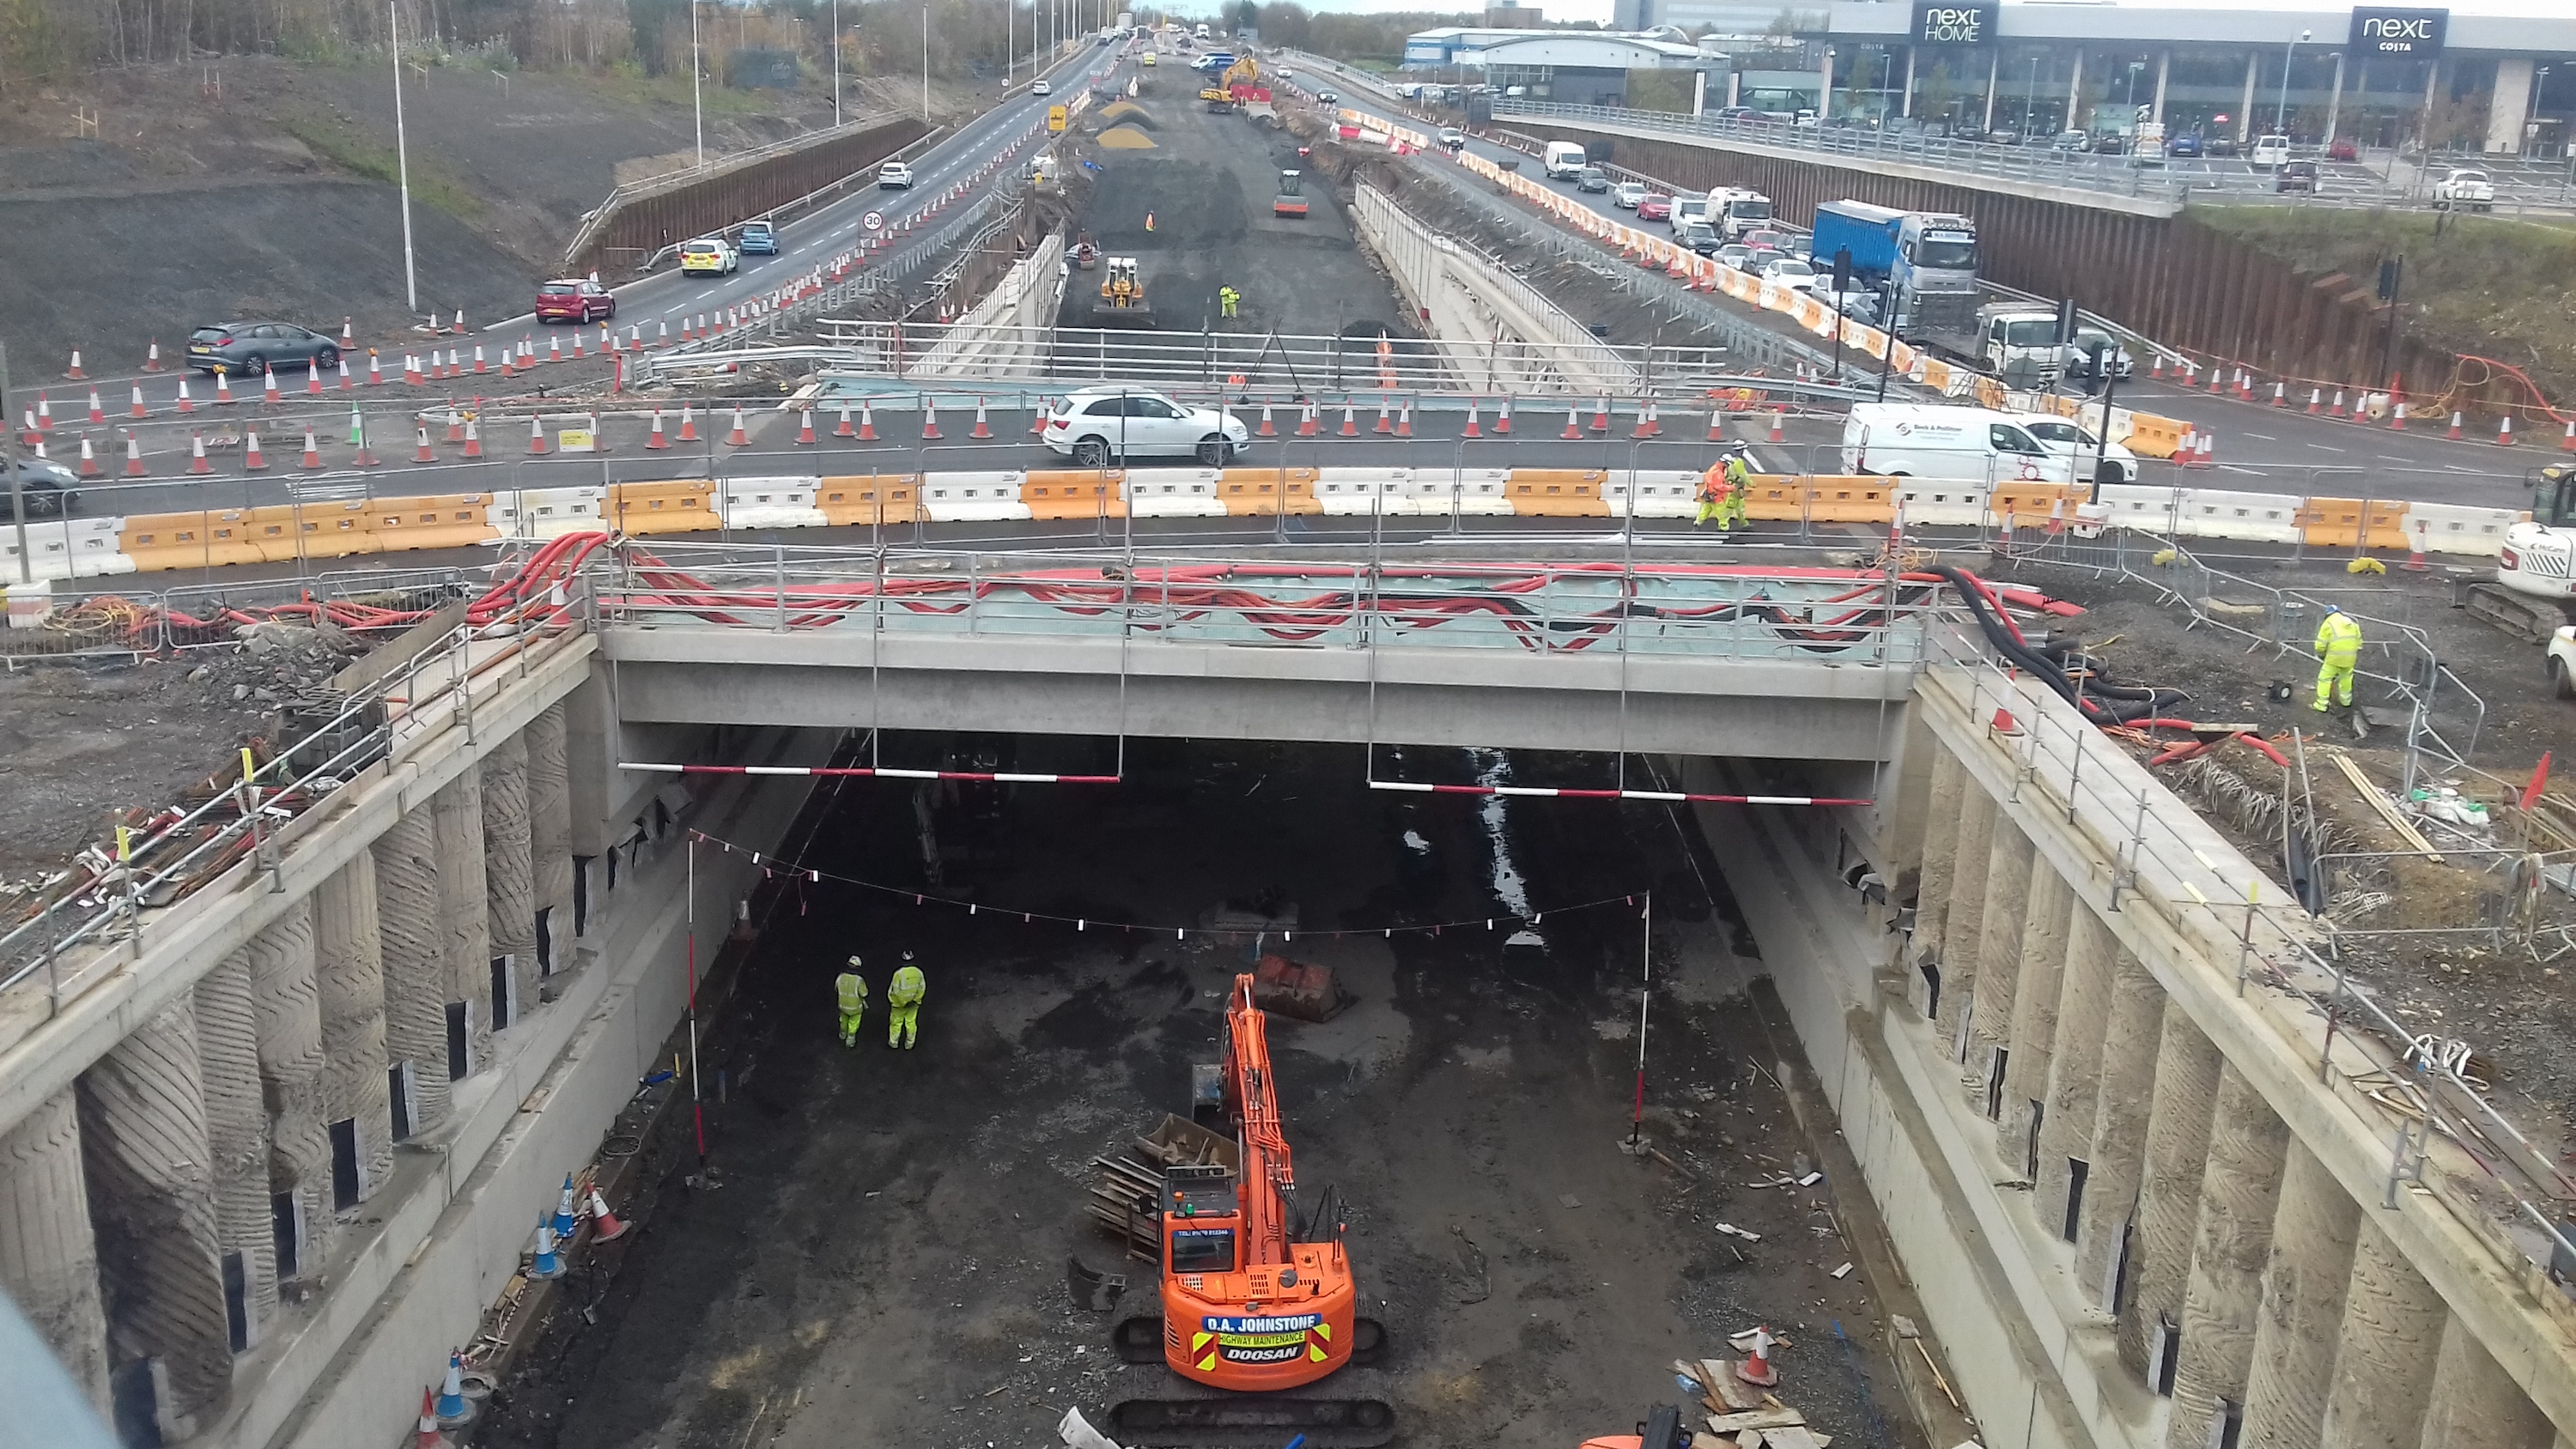 Civil engineers to complete work on £75m Highways England Silverlink project